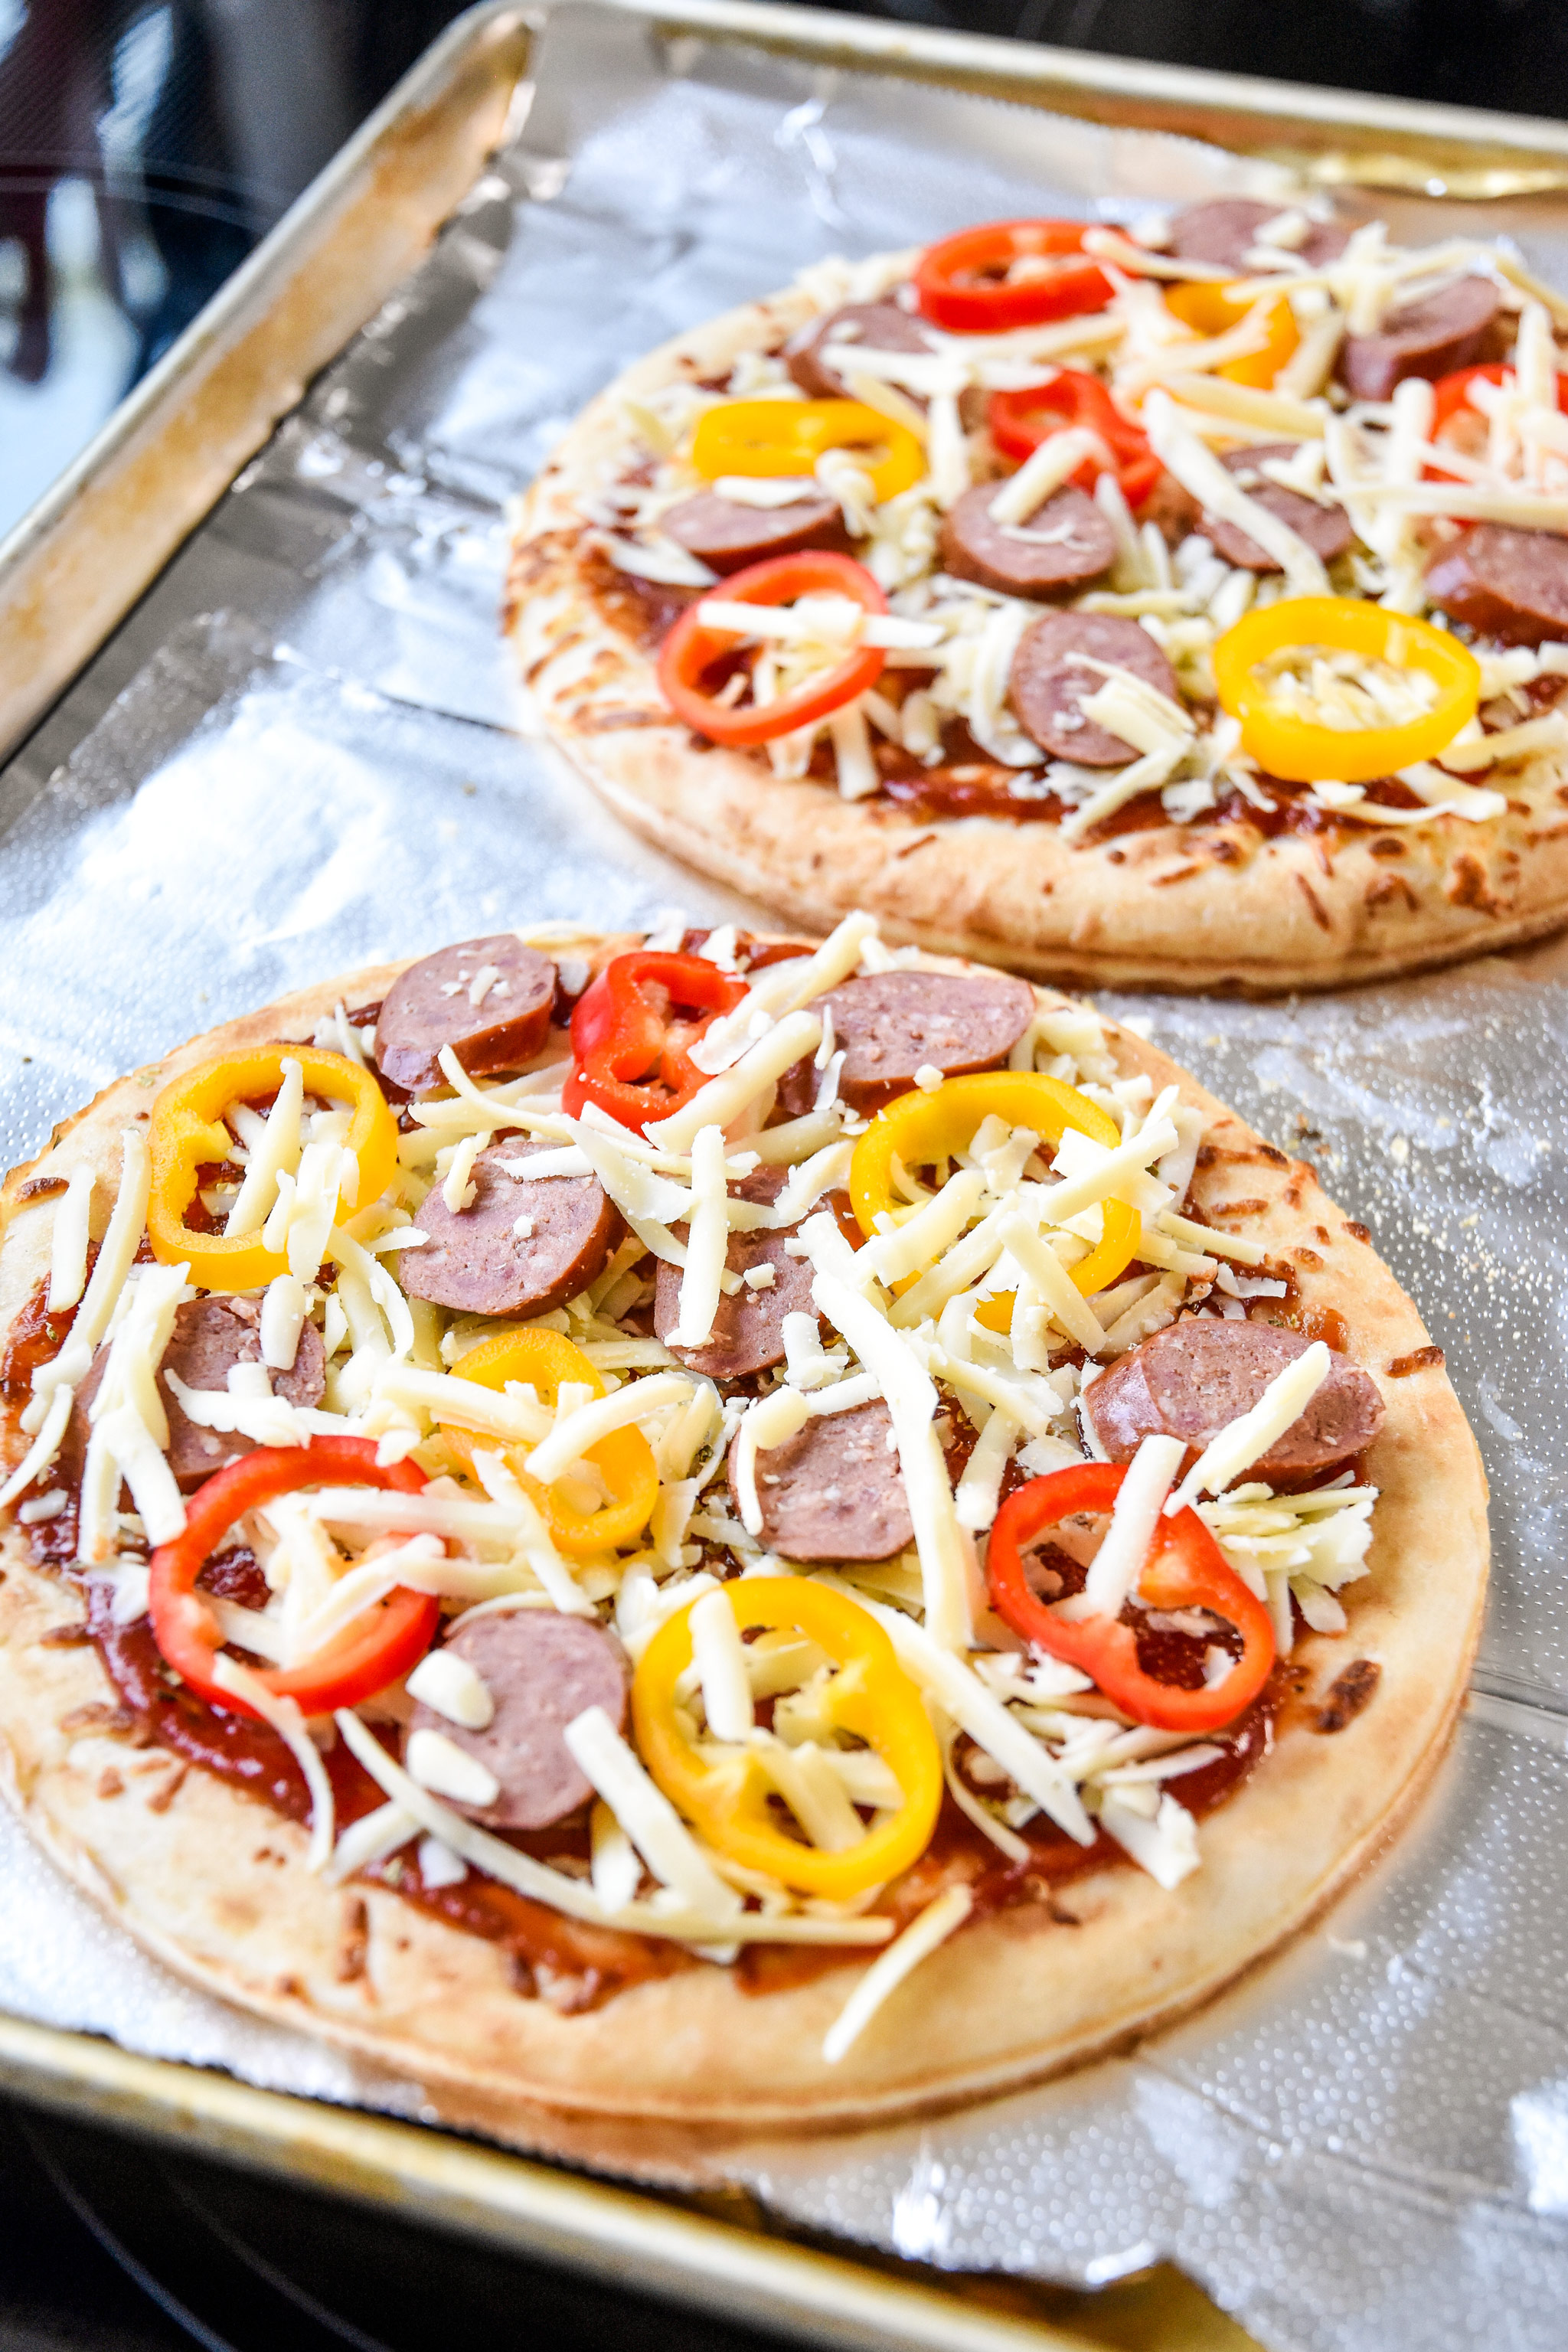 sausage and pepper personal pizzas just assembled and about to go in the oven